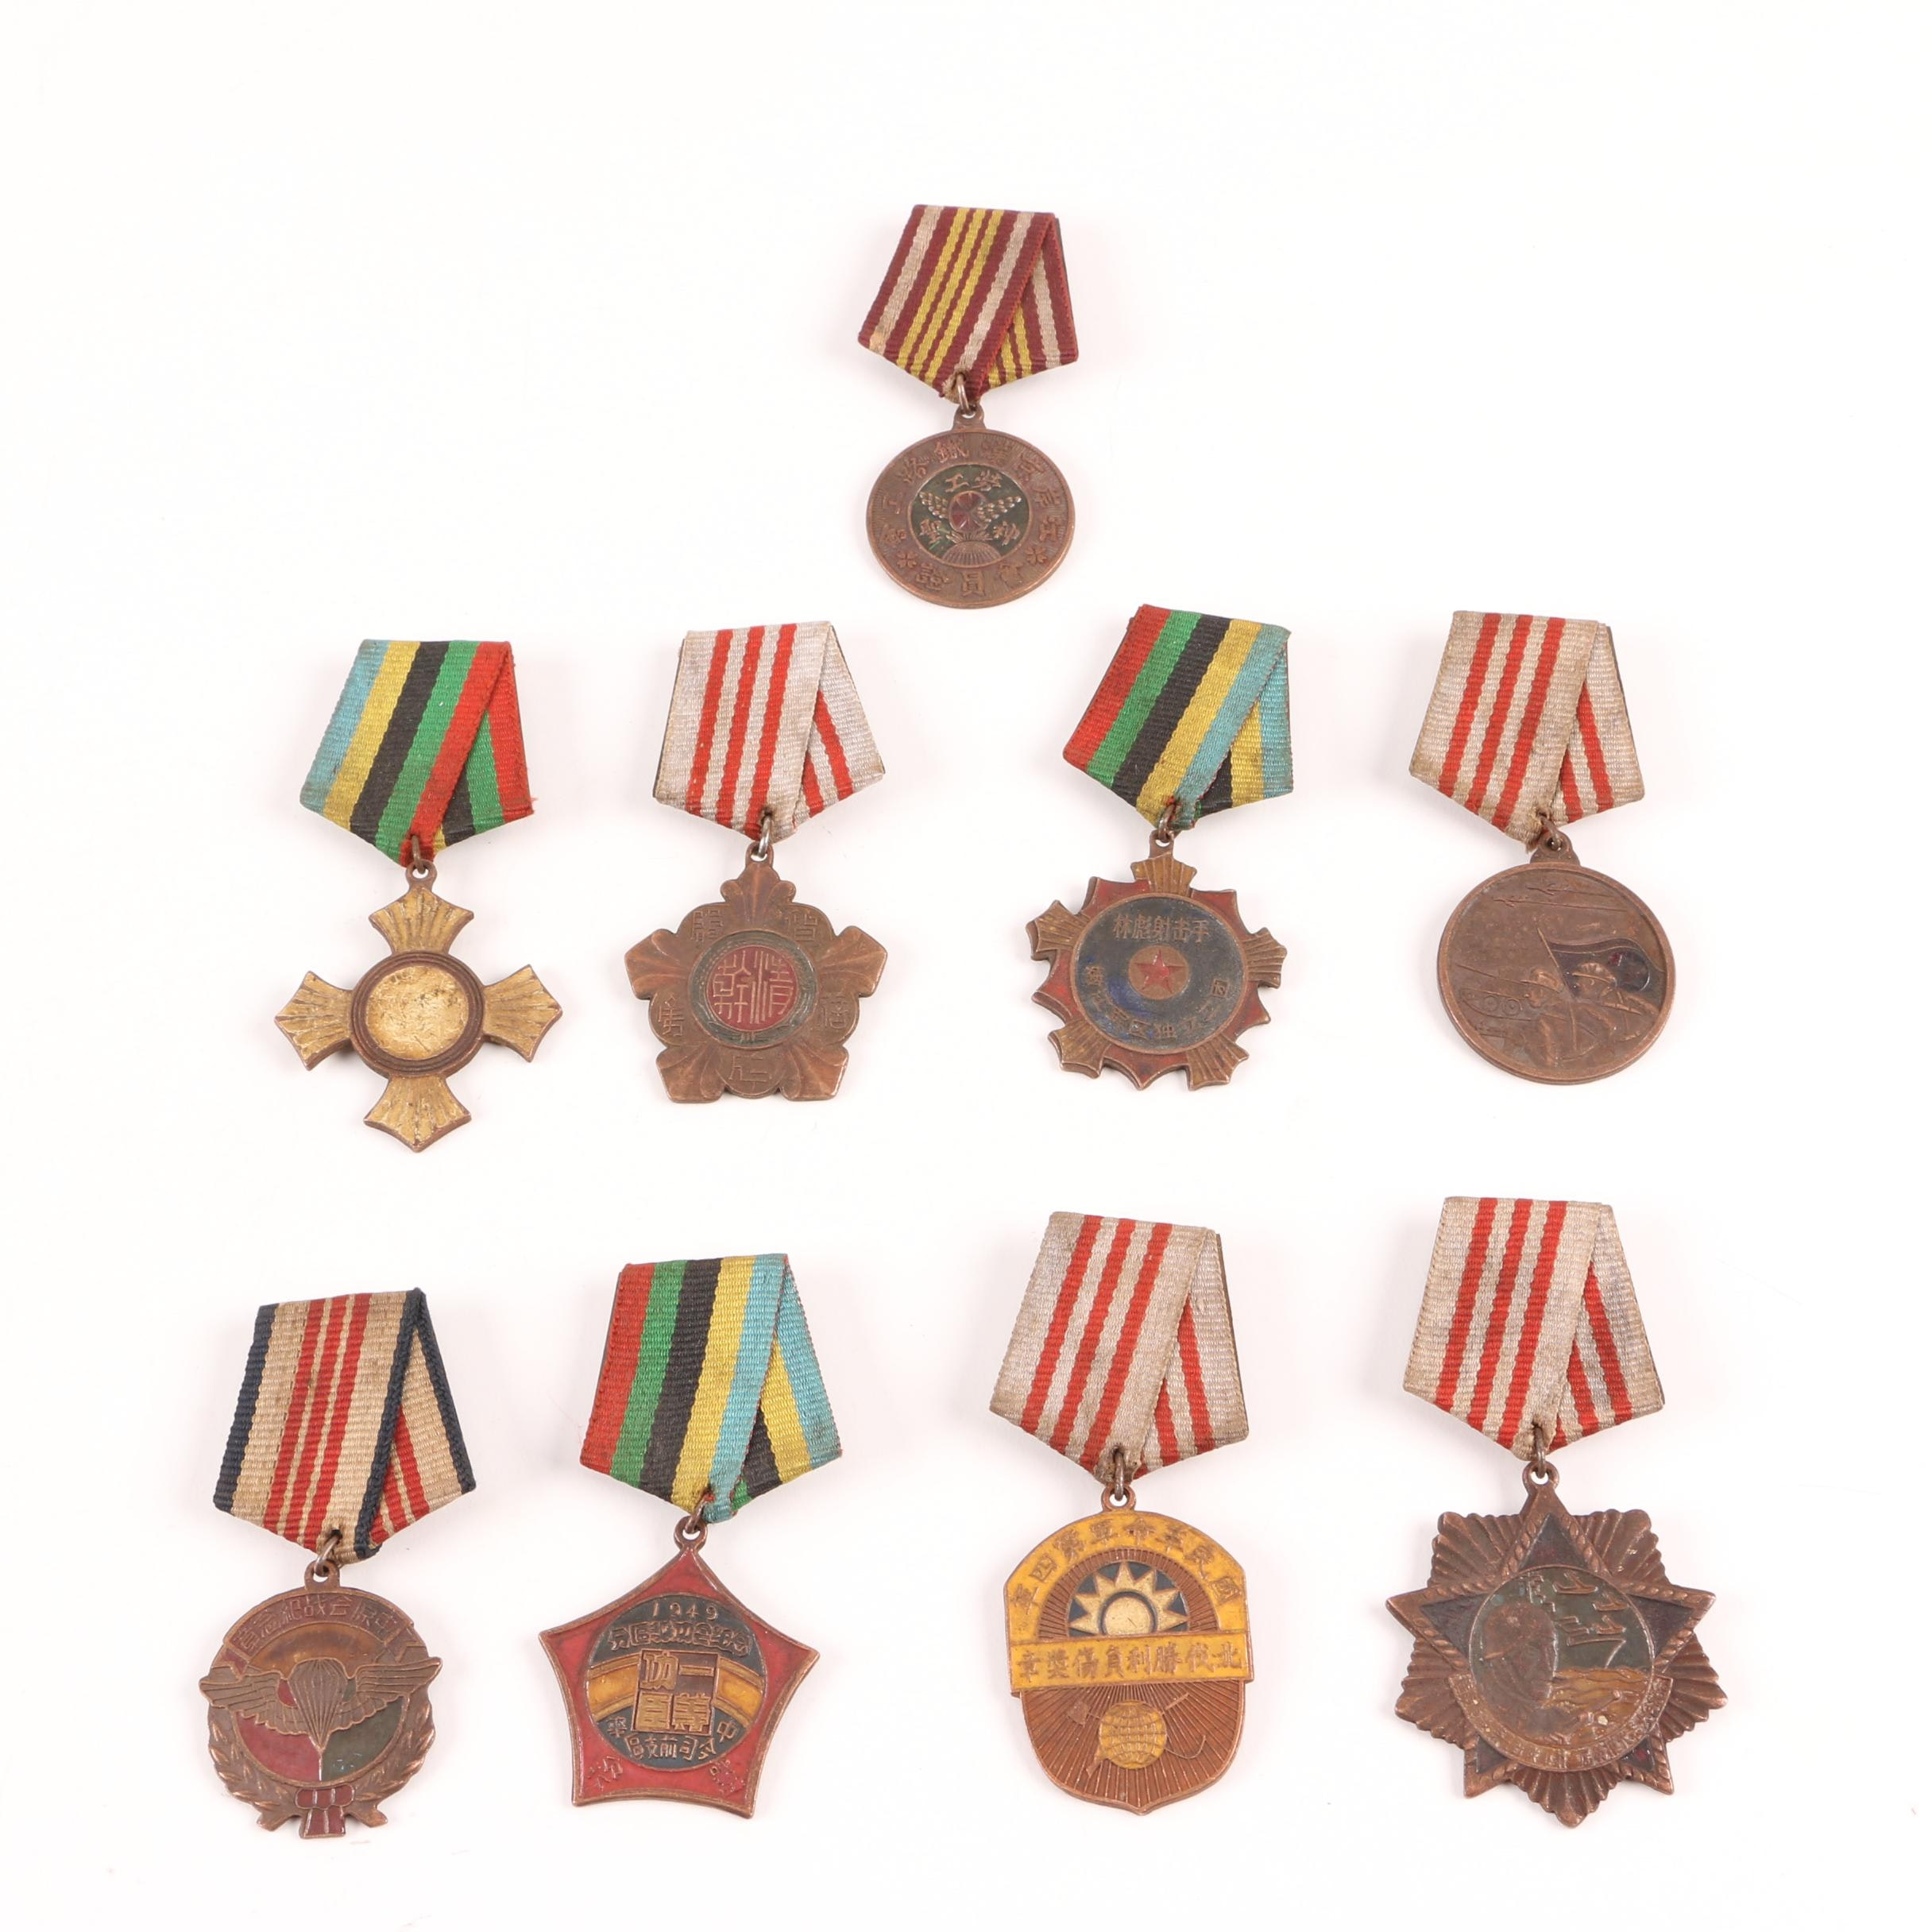 Chinese Military Medals From Pre- and Post- World War II